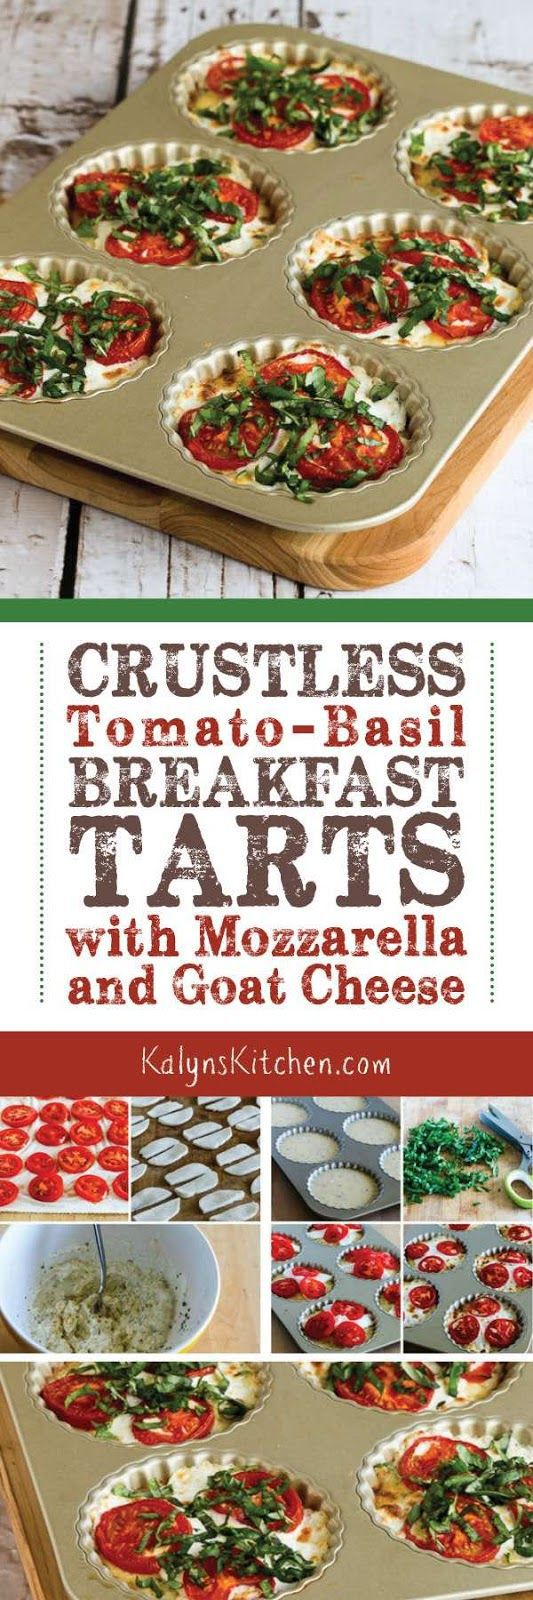 Crustless Tomato-Basil Breakfast Tarts with Mozzarella and Goat Cheese (Low-Carb Gluten-Free Meatless)